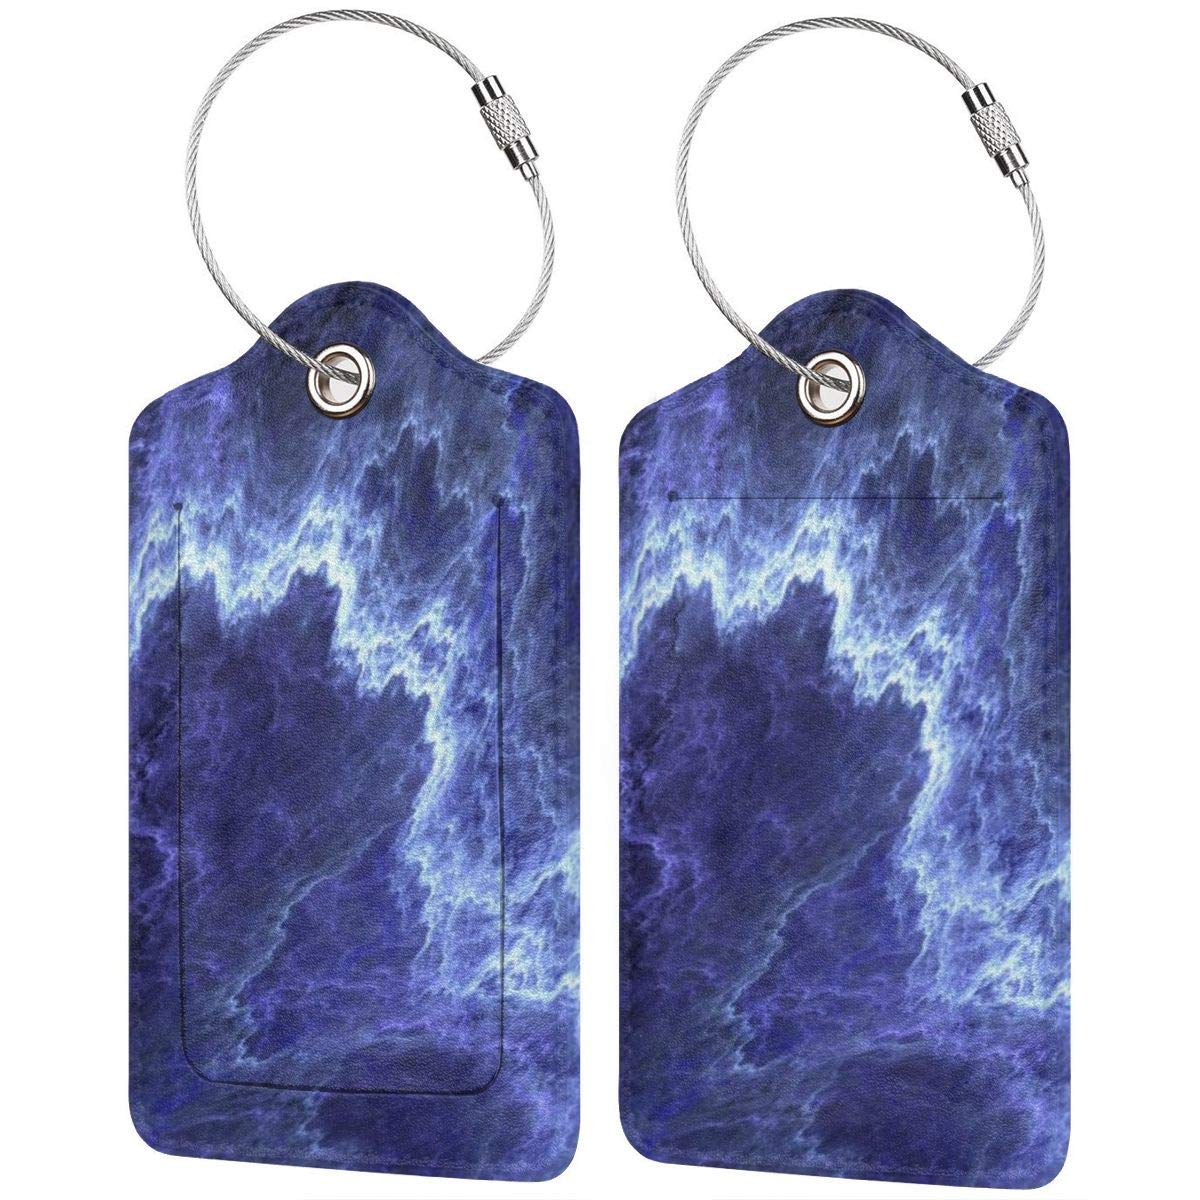 Marble Art Texture 9 Luggage Tag Label Travel Bag Label With Privacy Cover Luggage Tag Leather Personalized Suitcase Tag Travel Accessories